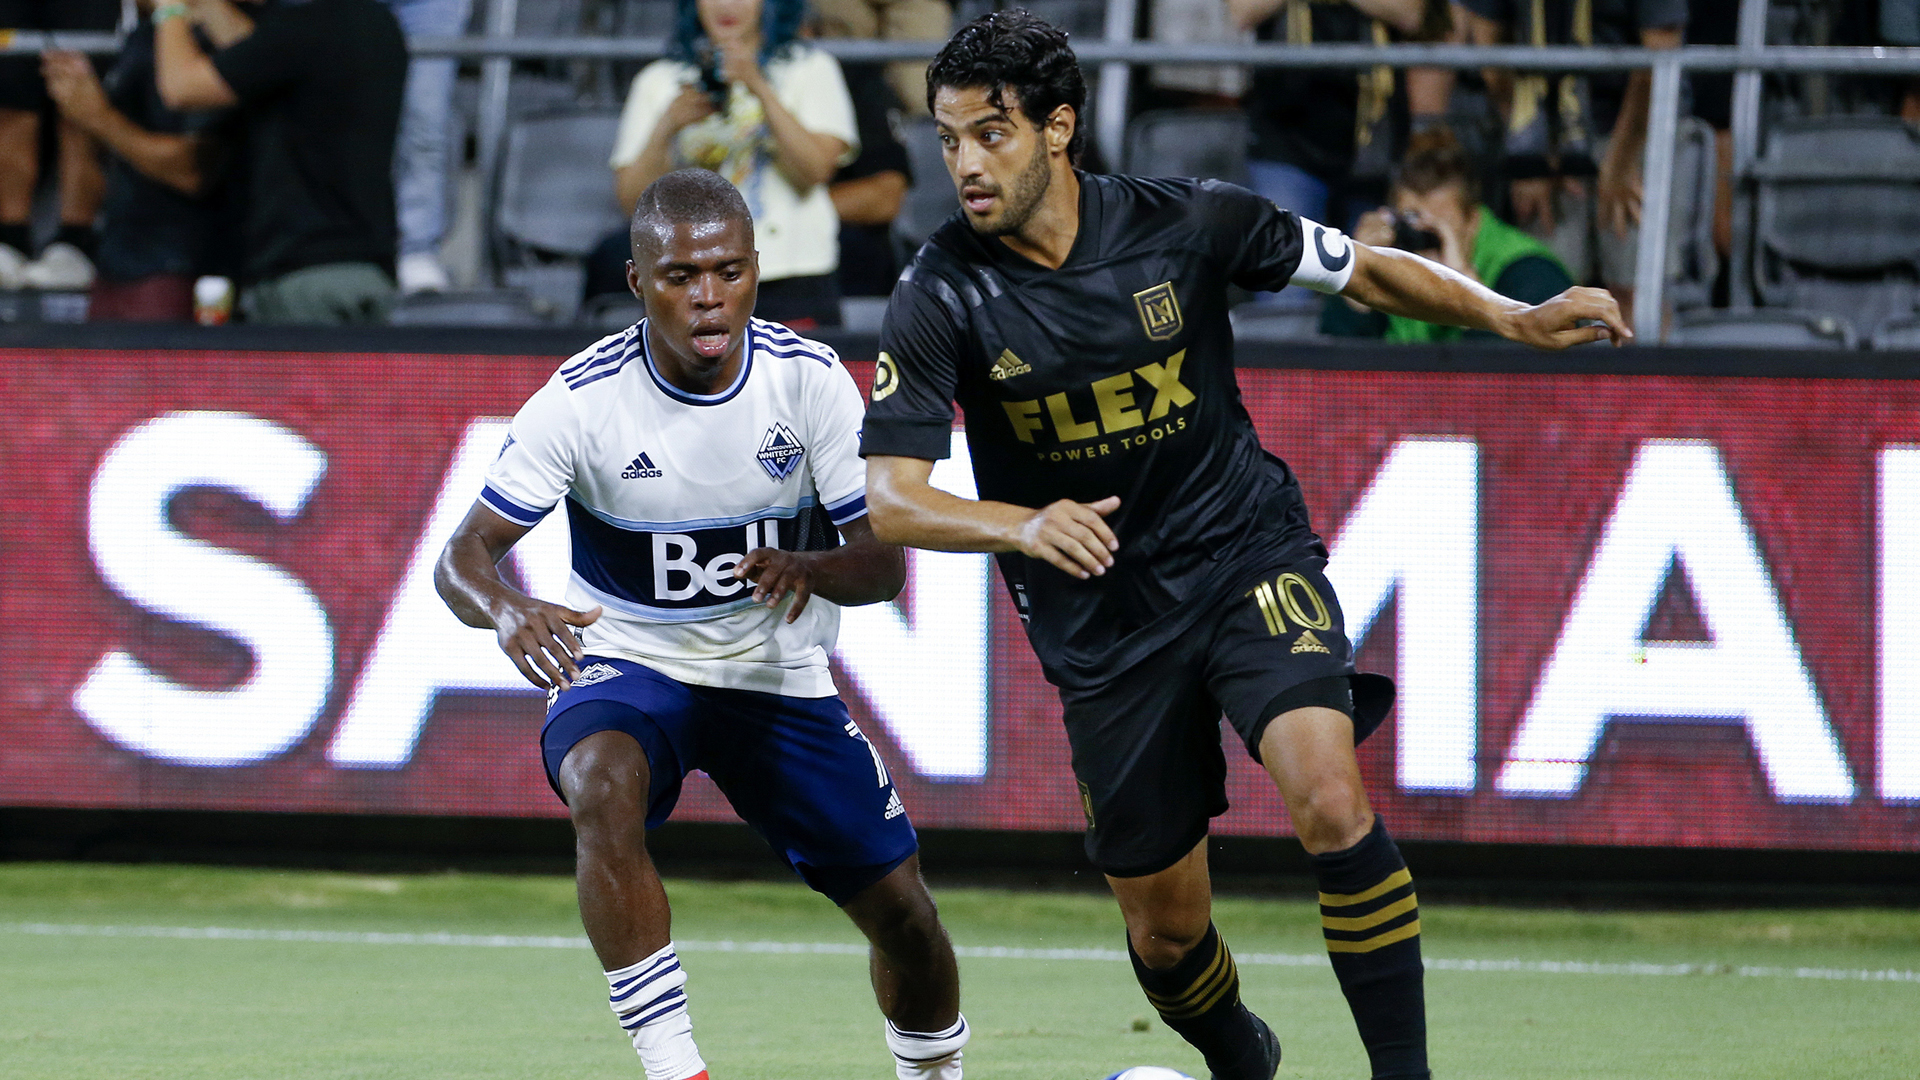 Los Angeles FC forward Carlos Vela drives the ball past Vancouver Whitecaps midfielder Deiber Caicedo during the second half of an MLS soccer match in Los Angeles on July 24, 2021. (Ringo H.W. Chiu/Associated Press)